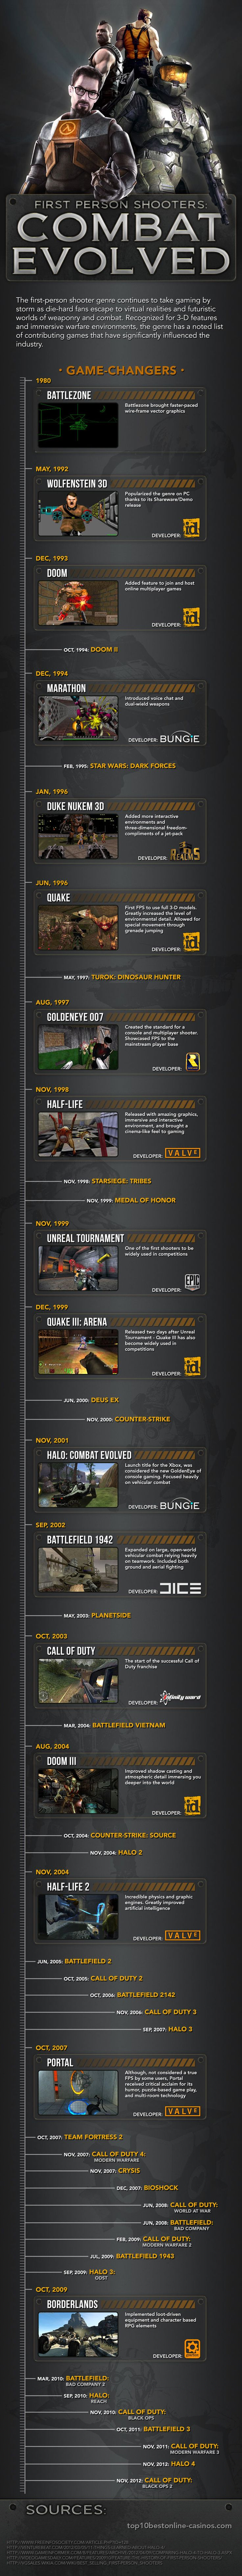 This infograph depicts the evolution of First Person Shooters from 1980 to 2009. Listing popular games such as Battlezone, Doom, Goldeneye 007, and Call of Duty, the infograph illustrates how particular games have influences the gaming industry.